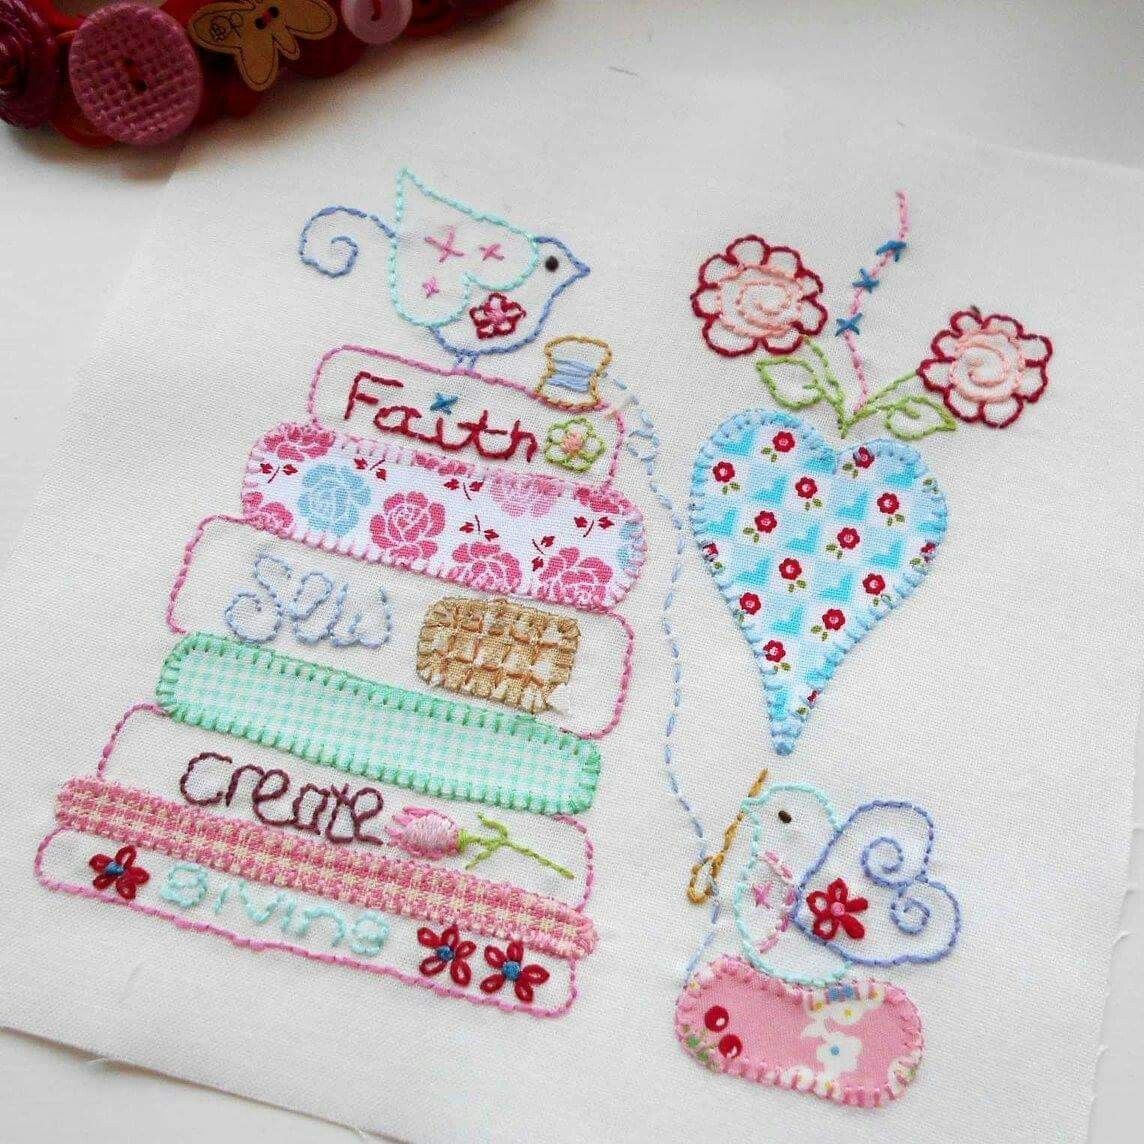 Pin de Debbie Thomas Martin en Embroidery Designs | Pinterest